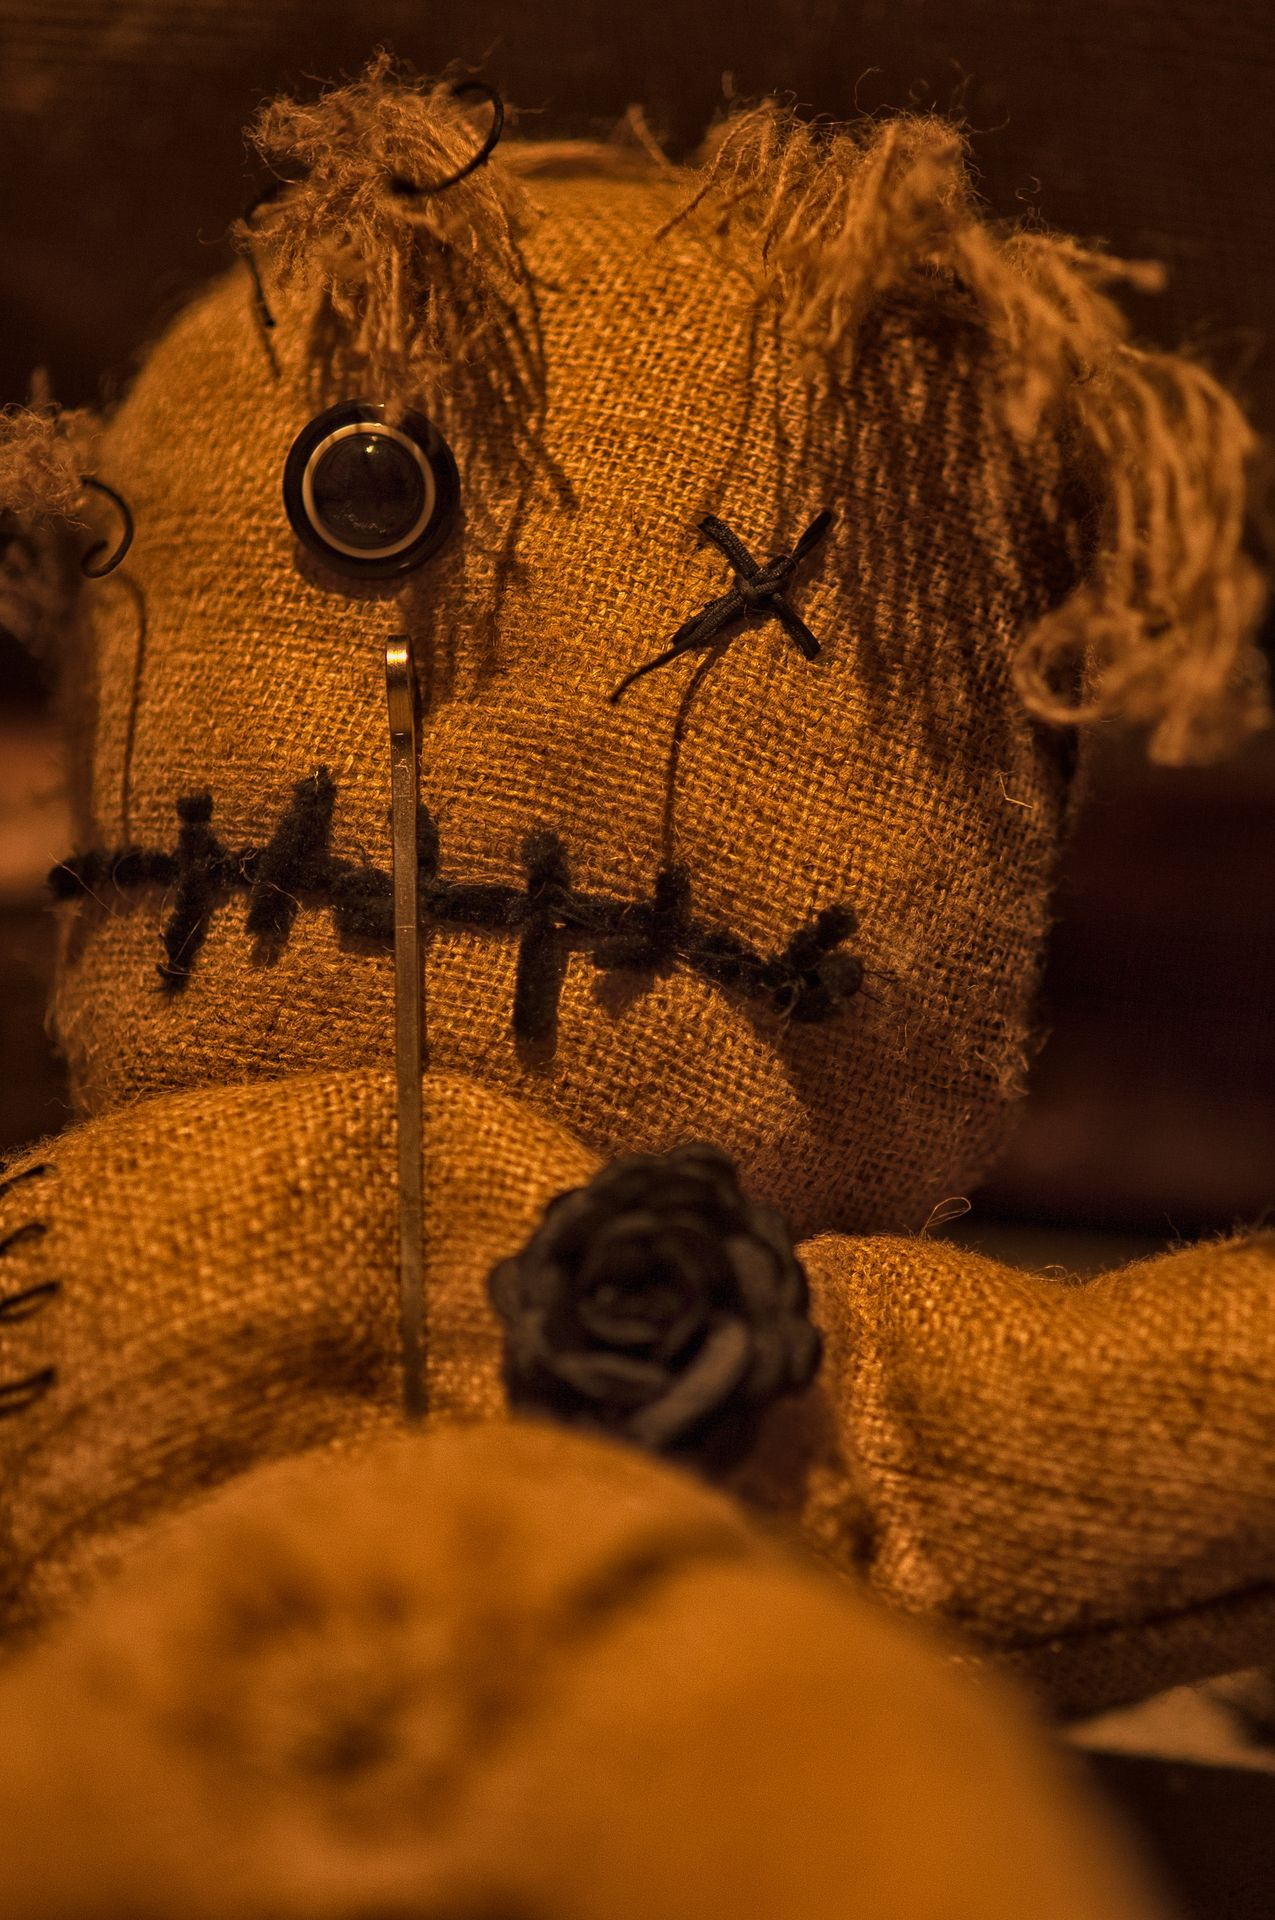 Voodoo Escape Room - Voodoo Doll With Stick